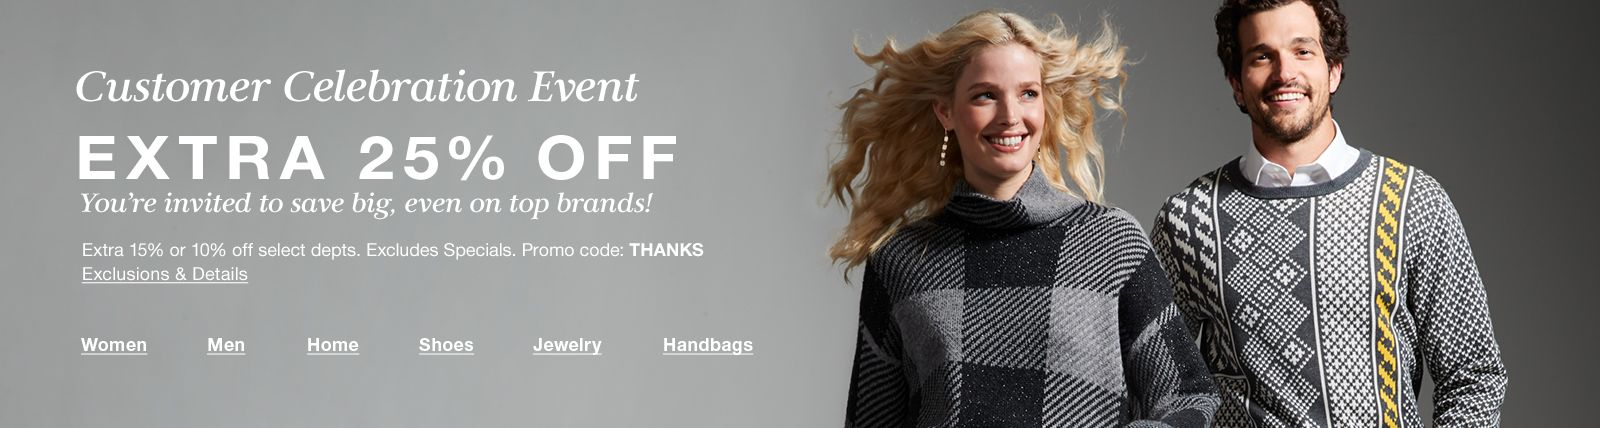 Customer Celebration Event, Extra 25 percent Off, You're invited to save big even on top brands!, Exclusions and Details, Women, Men, Home, Shoes, Jewelry, Handbags